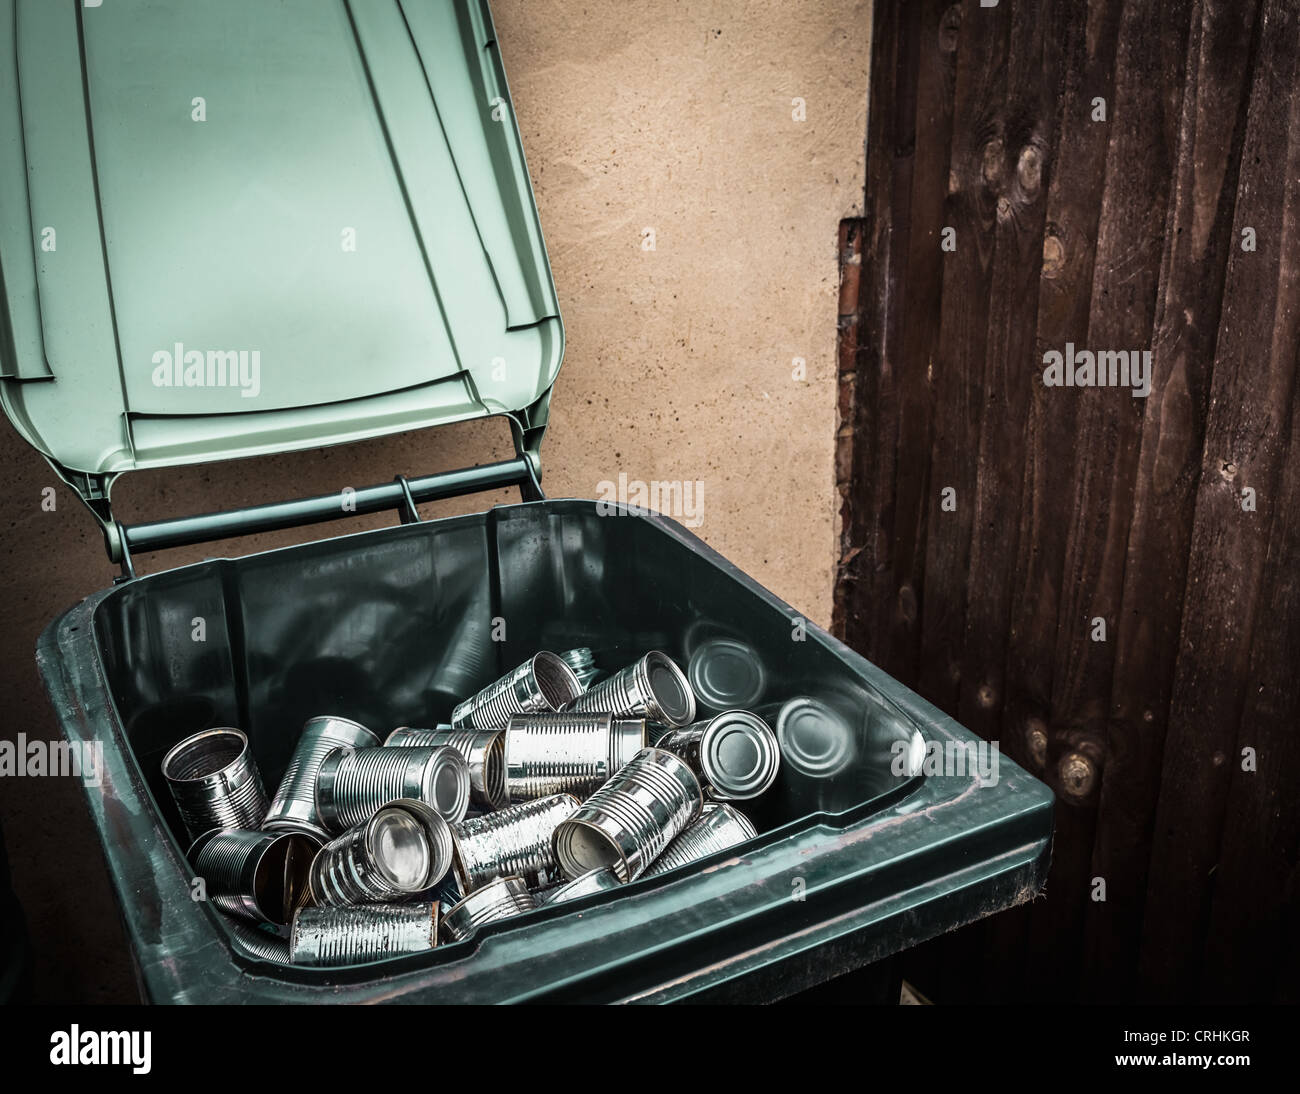 Aluminum cans in recycling bin - Stock Image